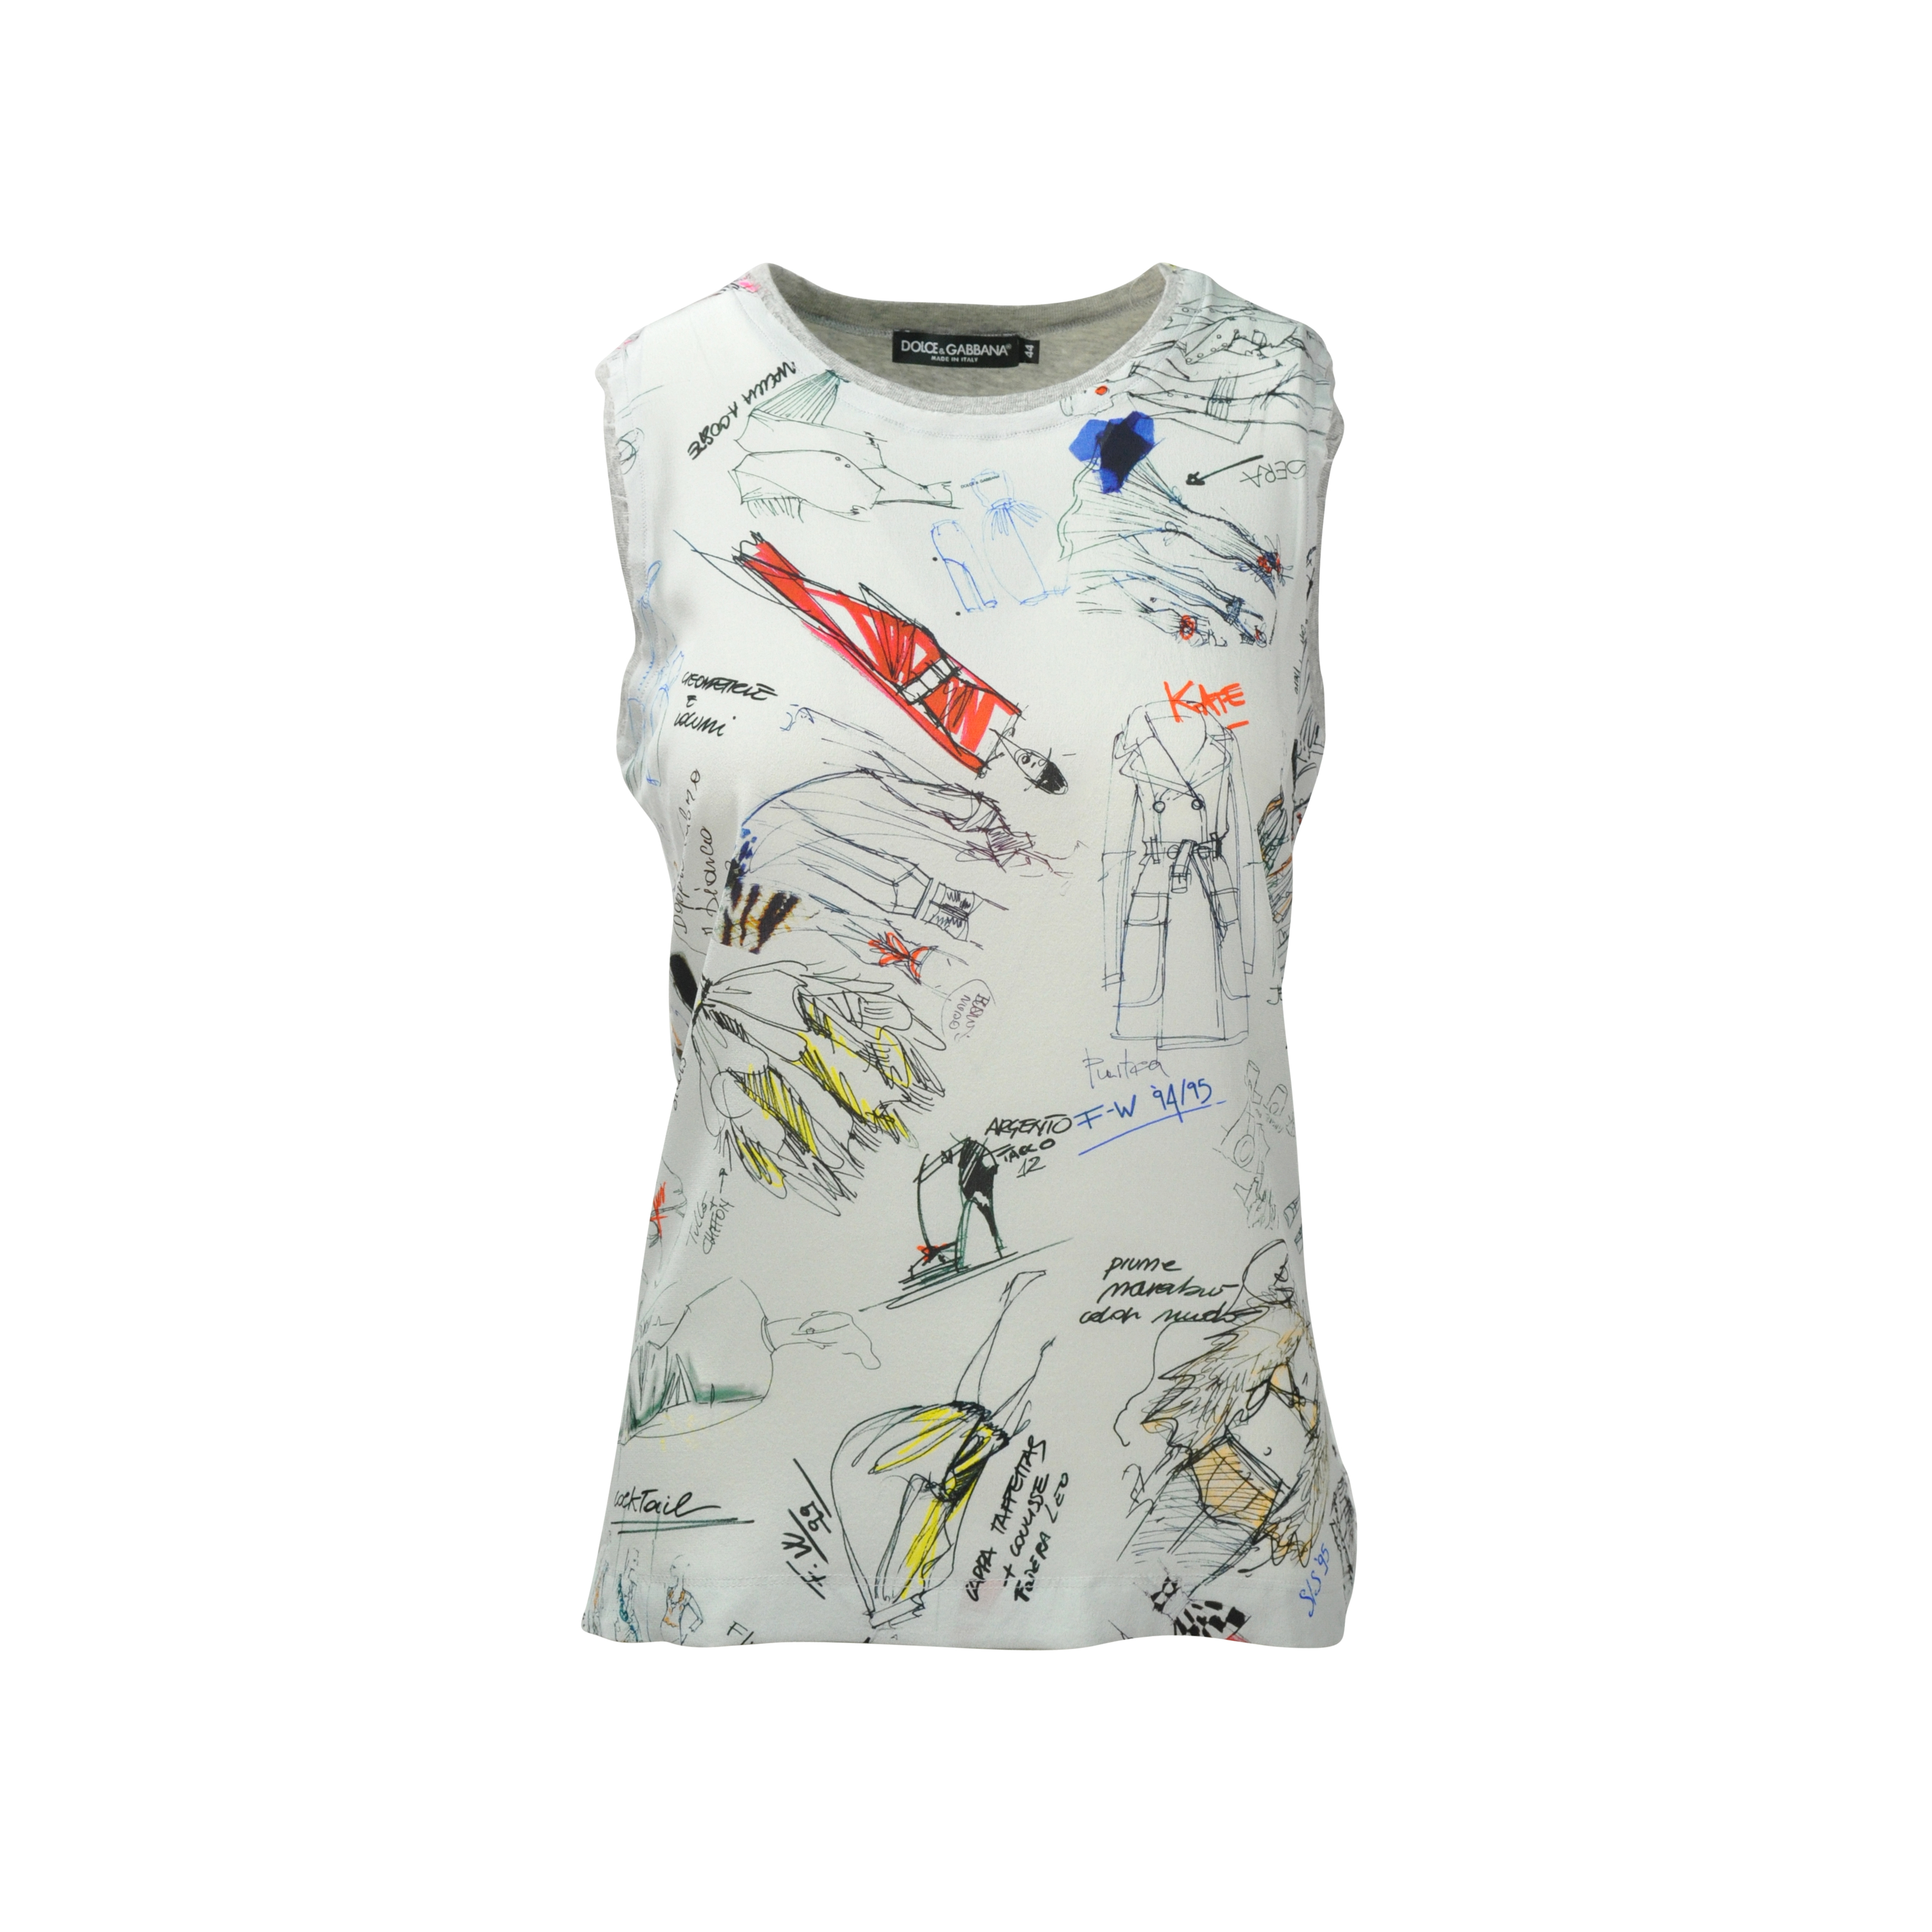 4cccc6c9 Authentic Second Hand Dolce & Gabbana Sketch Print Silk t-Shirt  (PSS-080-00088) - THE FIFTH COLLECTION